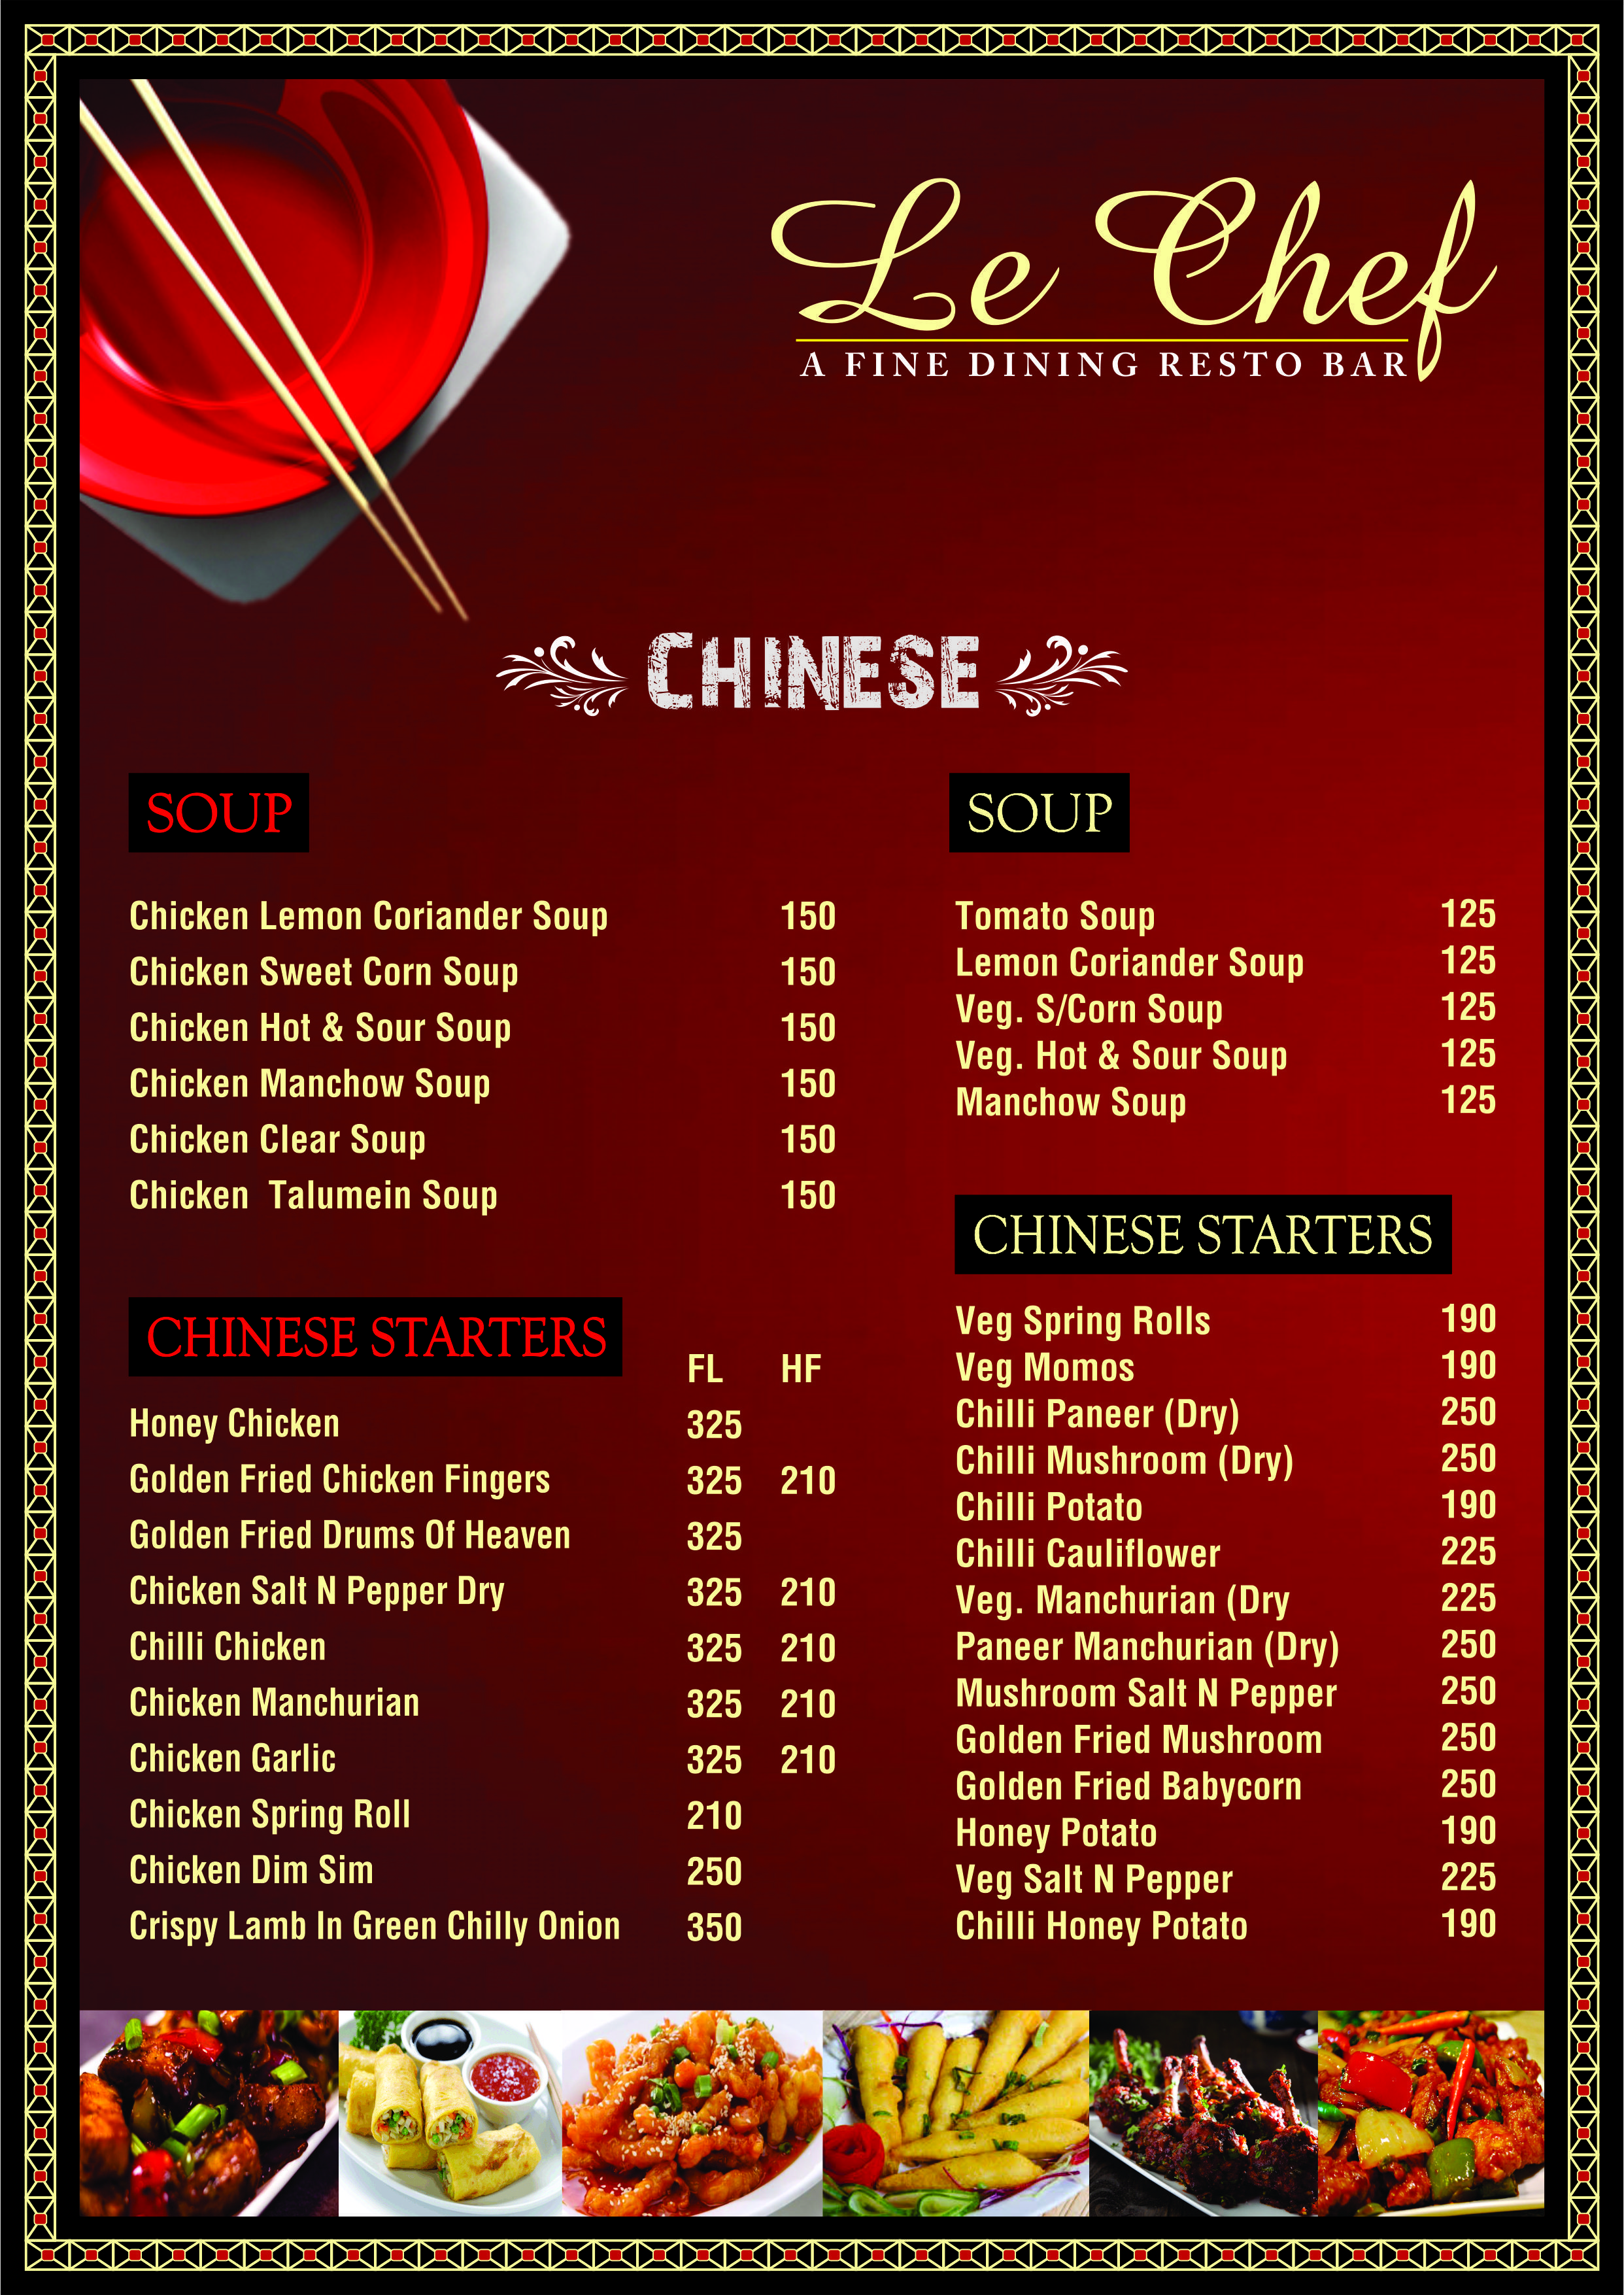 Le Chef Resto Delicious Indian Chinese Continental Food Menu Veg Restaurant Sweet Corn Soup Hot And Sour Soup